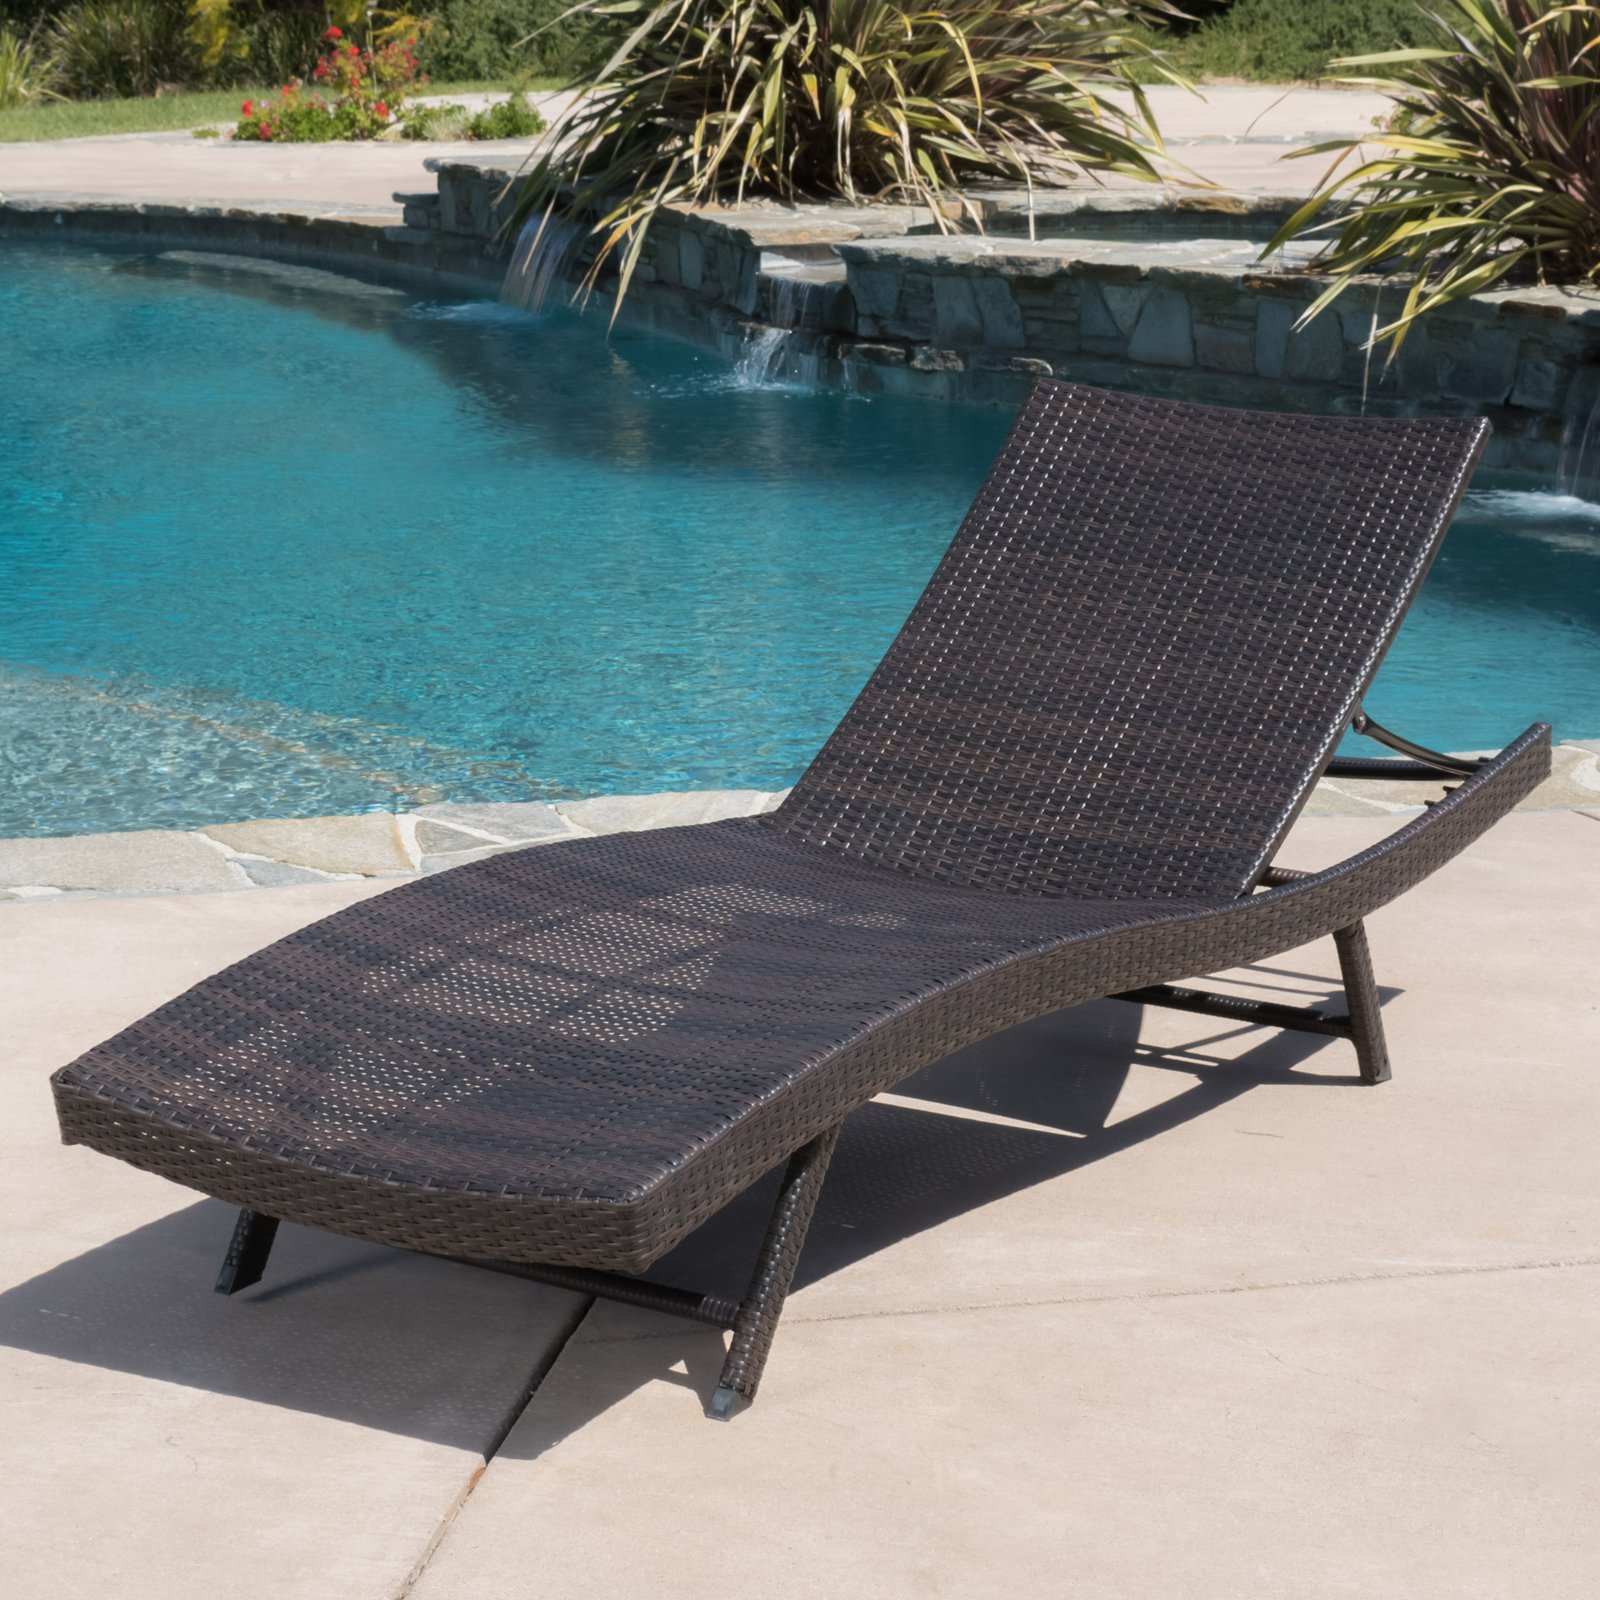 Best Selling Home Decor Kauai Wicker Patio Chaise Lounge by Home Loft Concepts